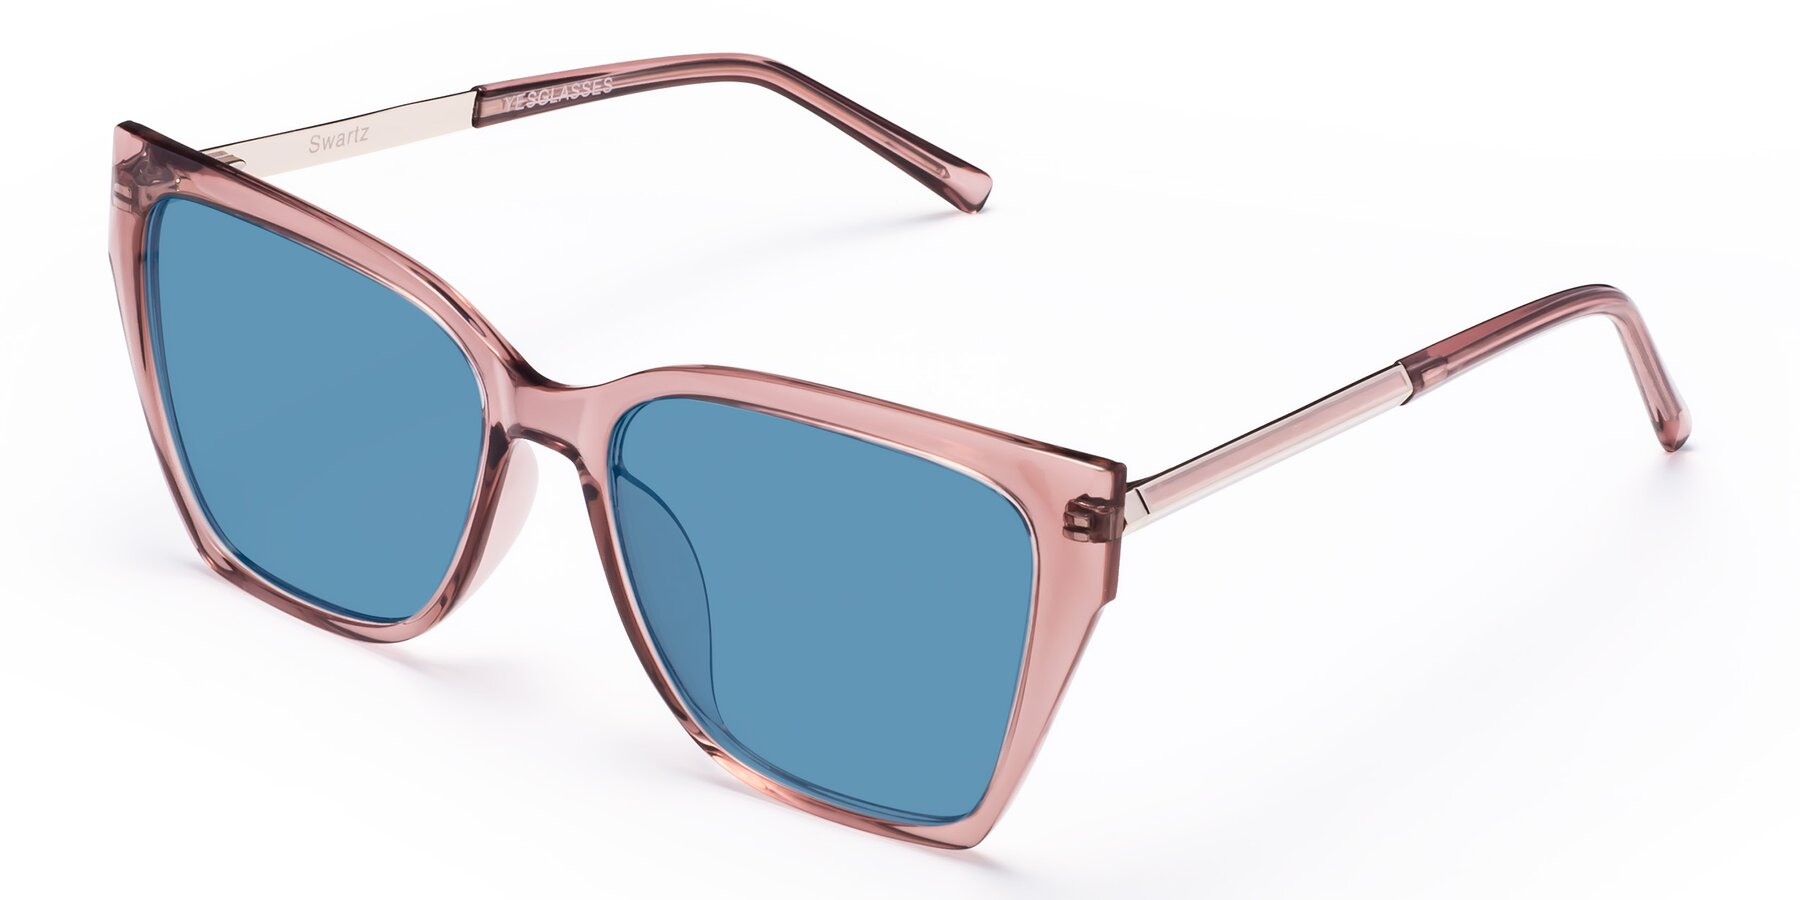 Angle of Swartz in Grape with Medium Blue Tinted Lenses